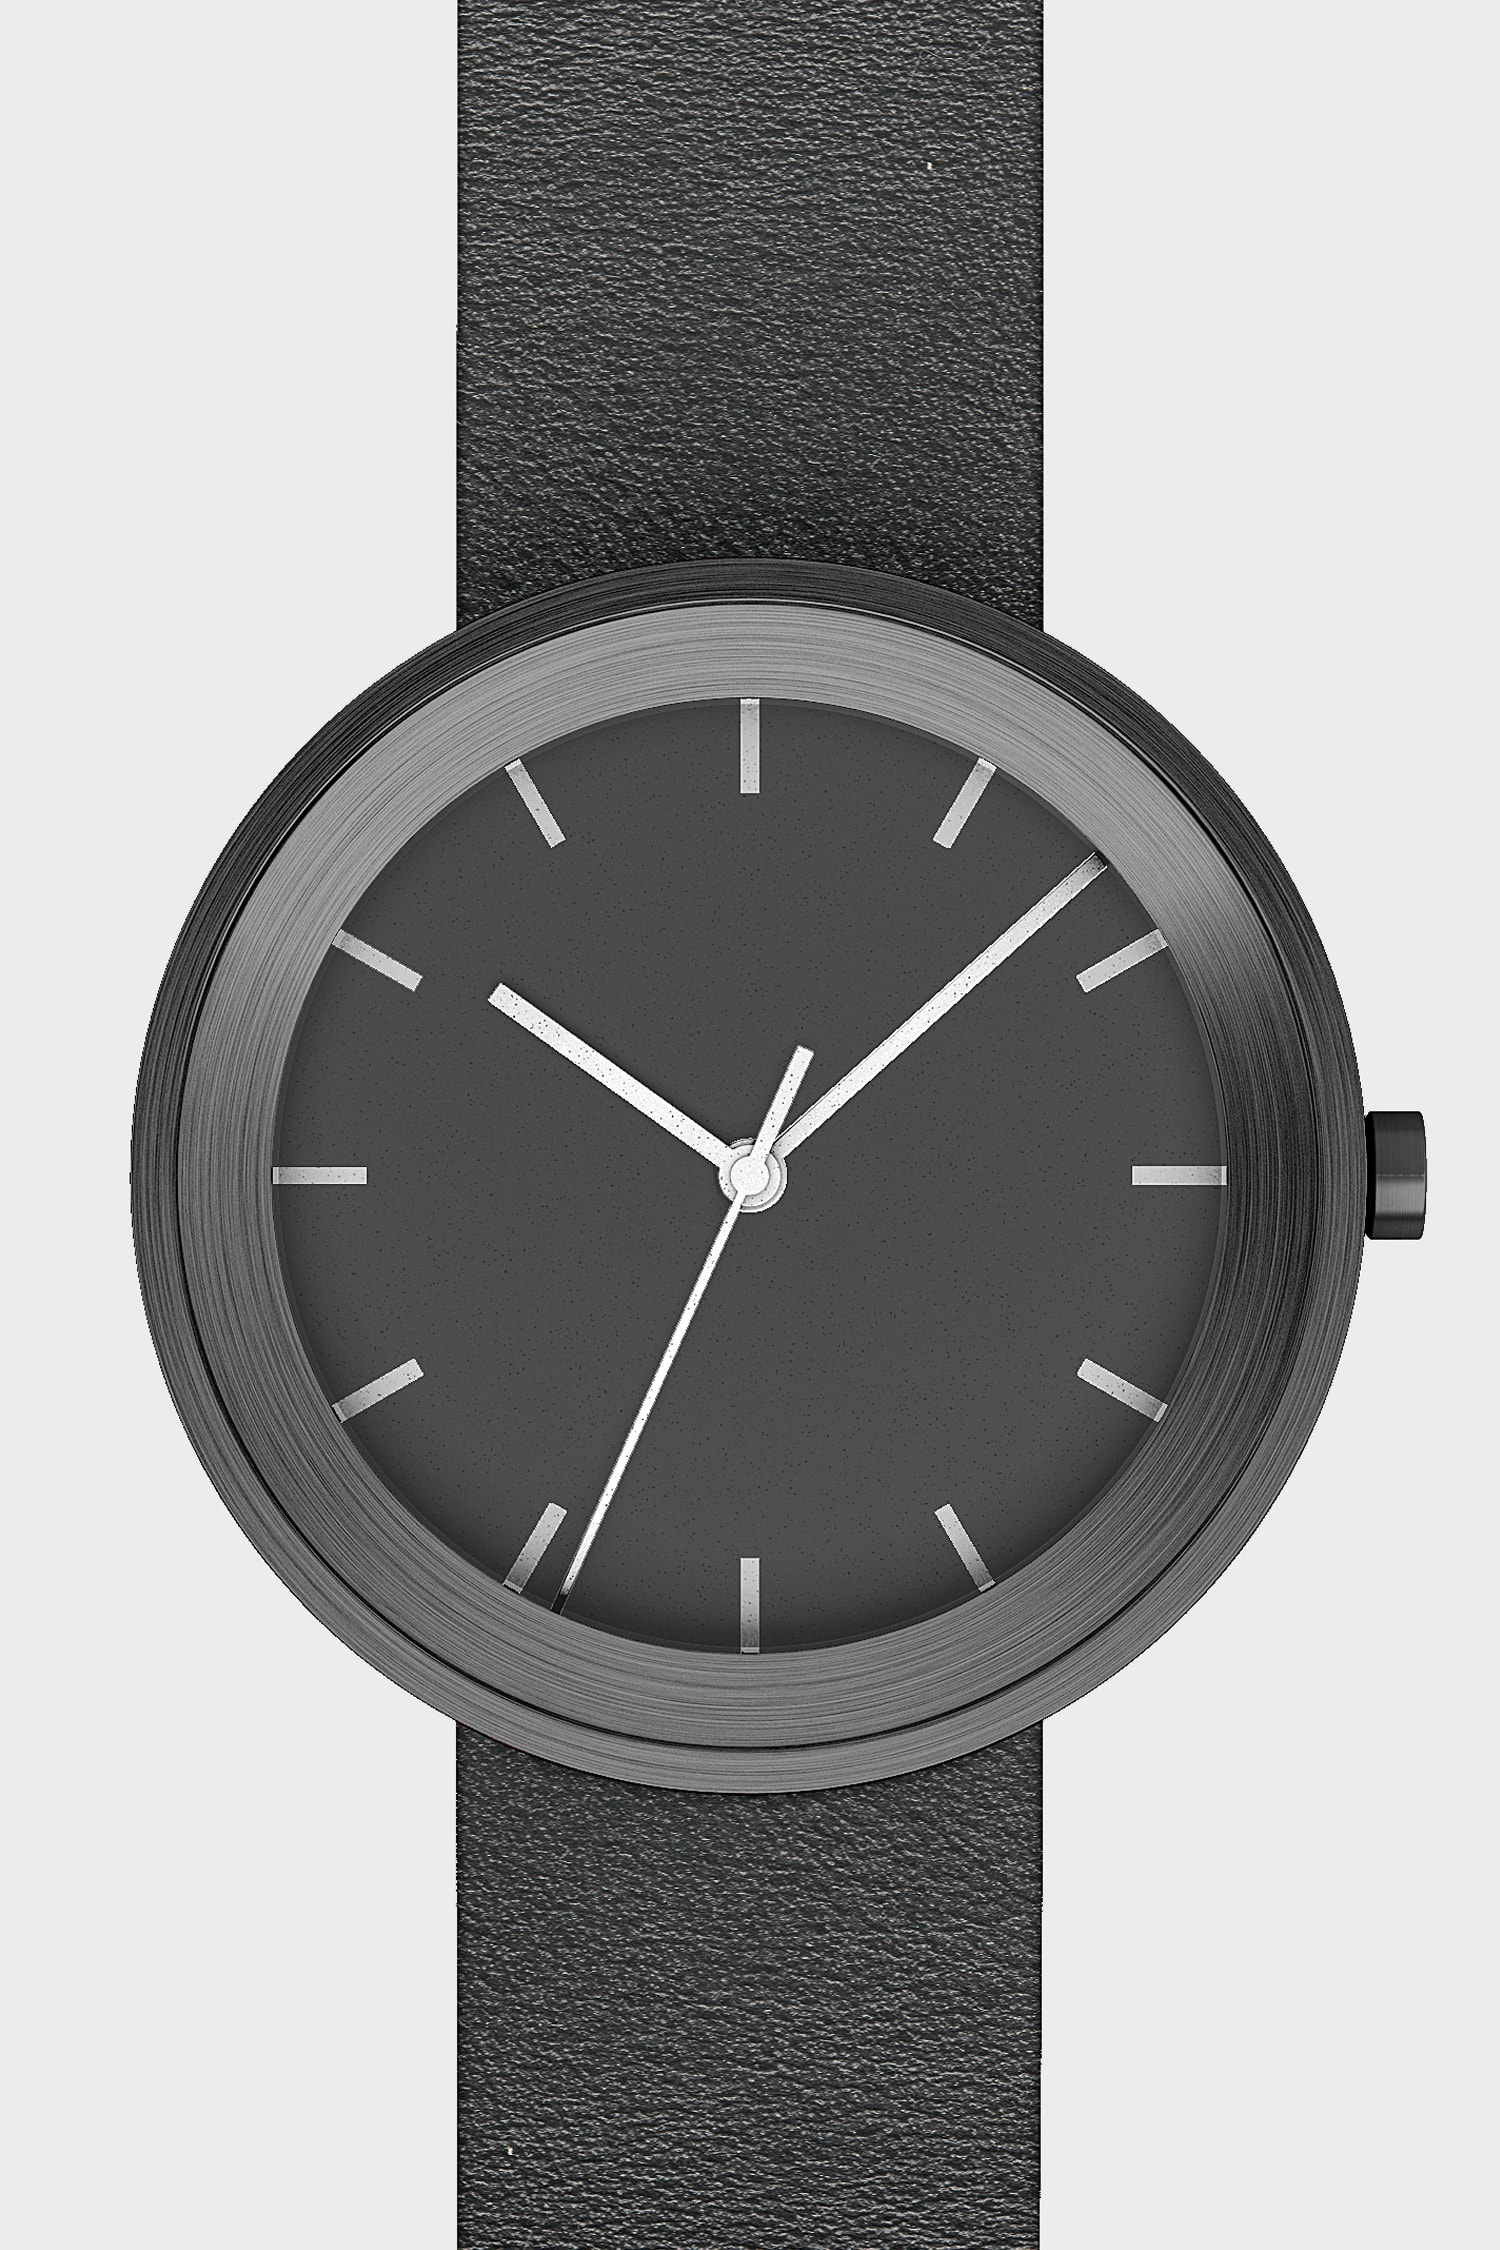 Front view of Hide Watch in black.